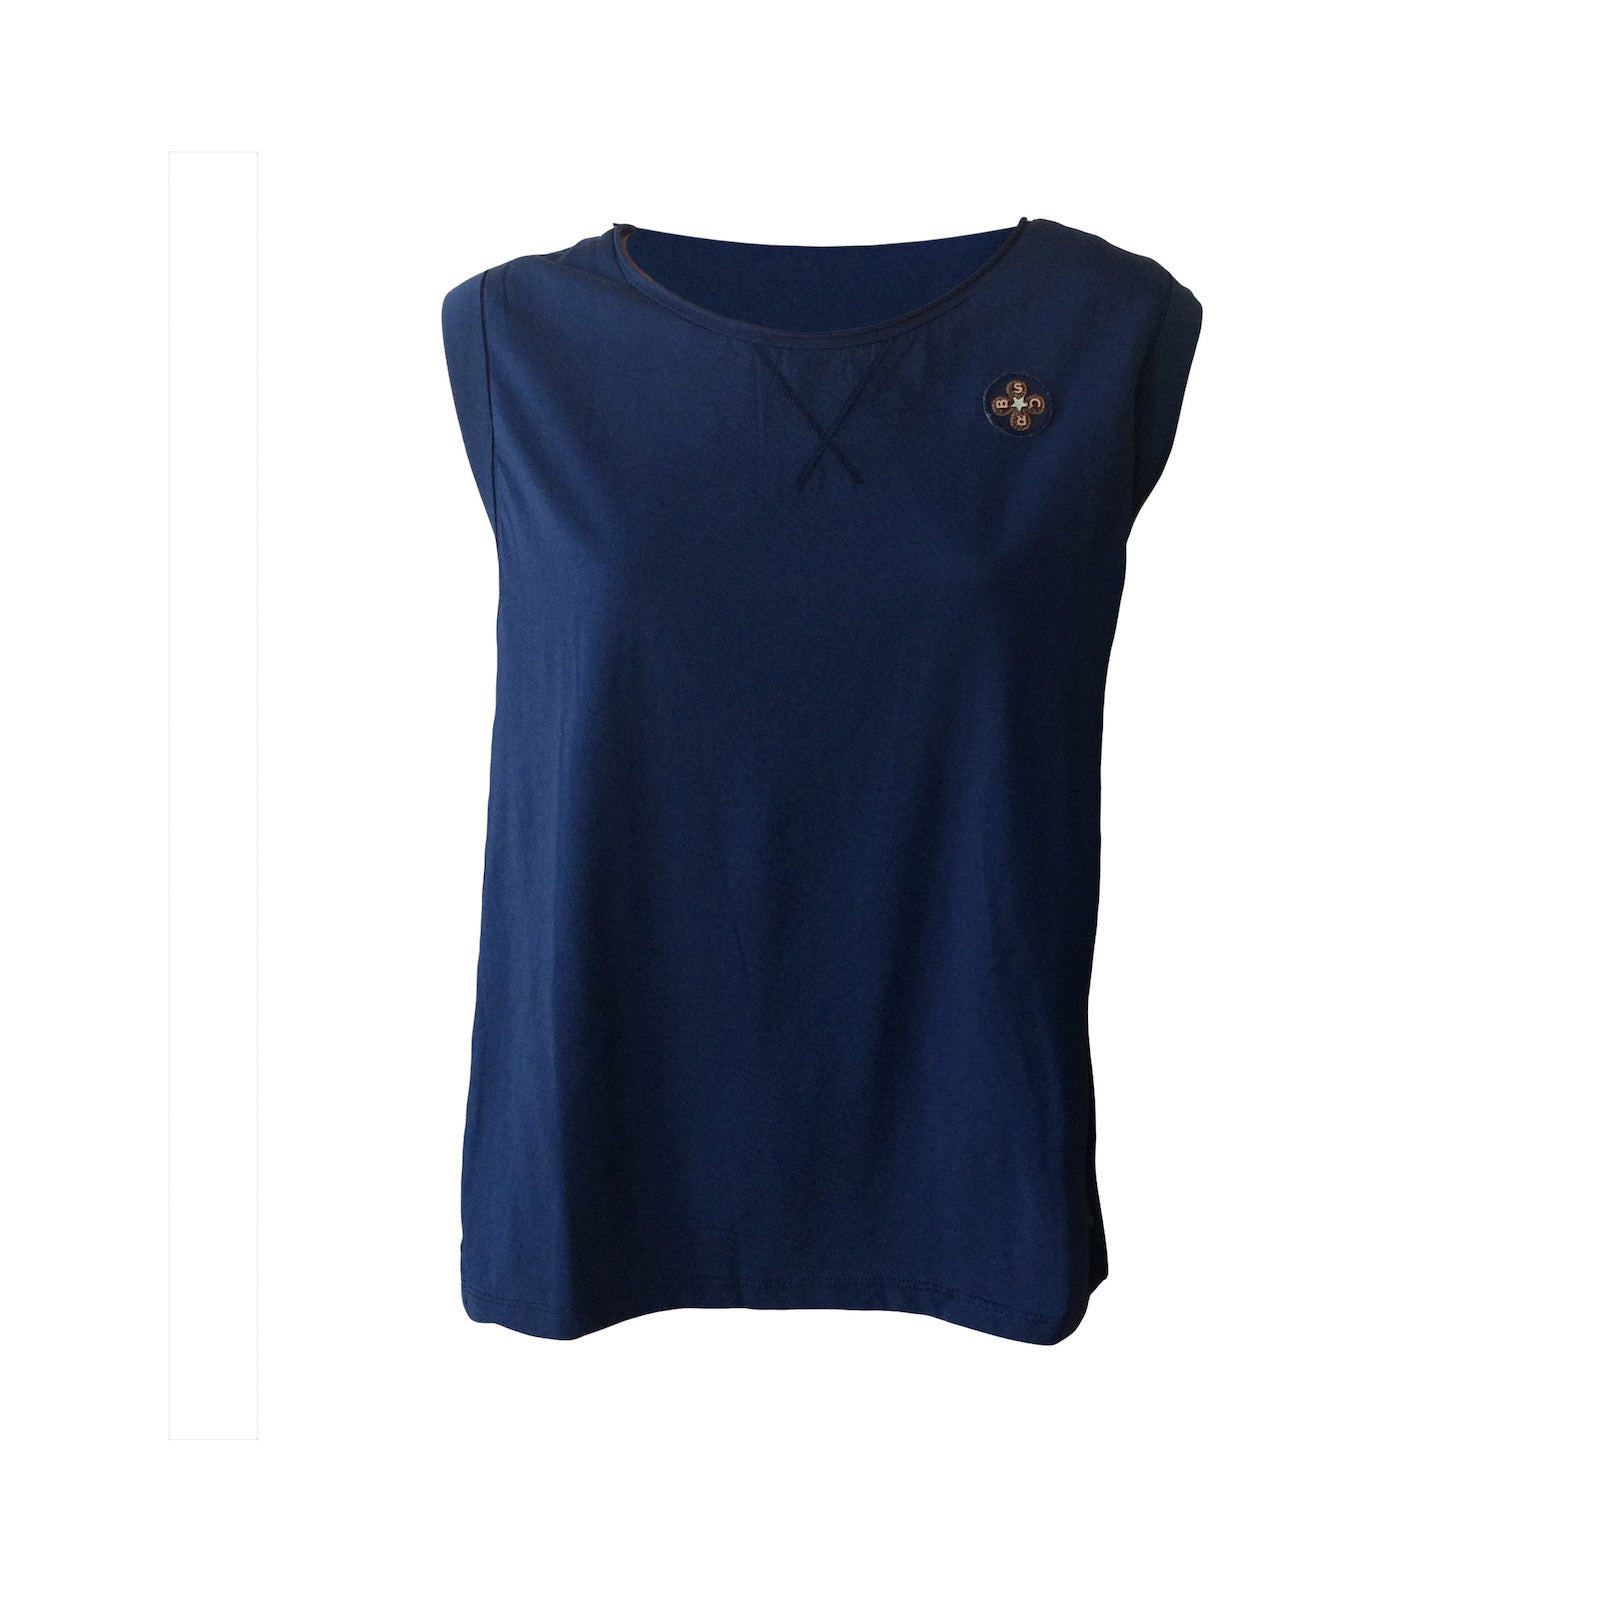 This Hi-Lo Tee by Scotch & Soda is a combination of navy block colours and batik. Ocean greens combine with navy for a versatile, comfortable and beautifully made tee.